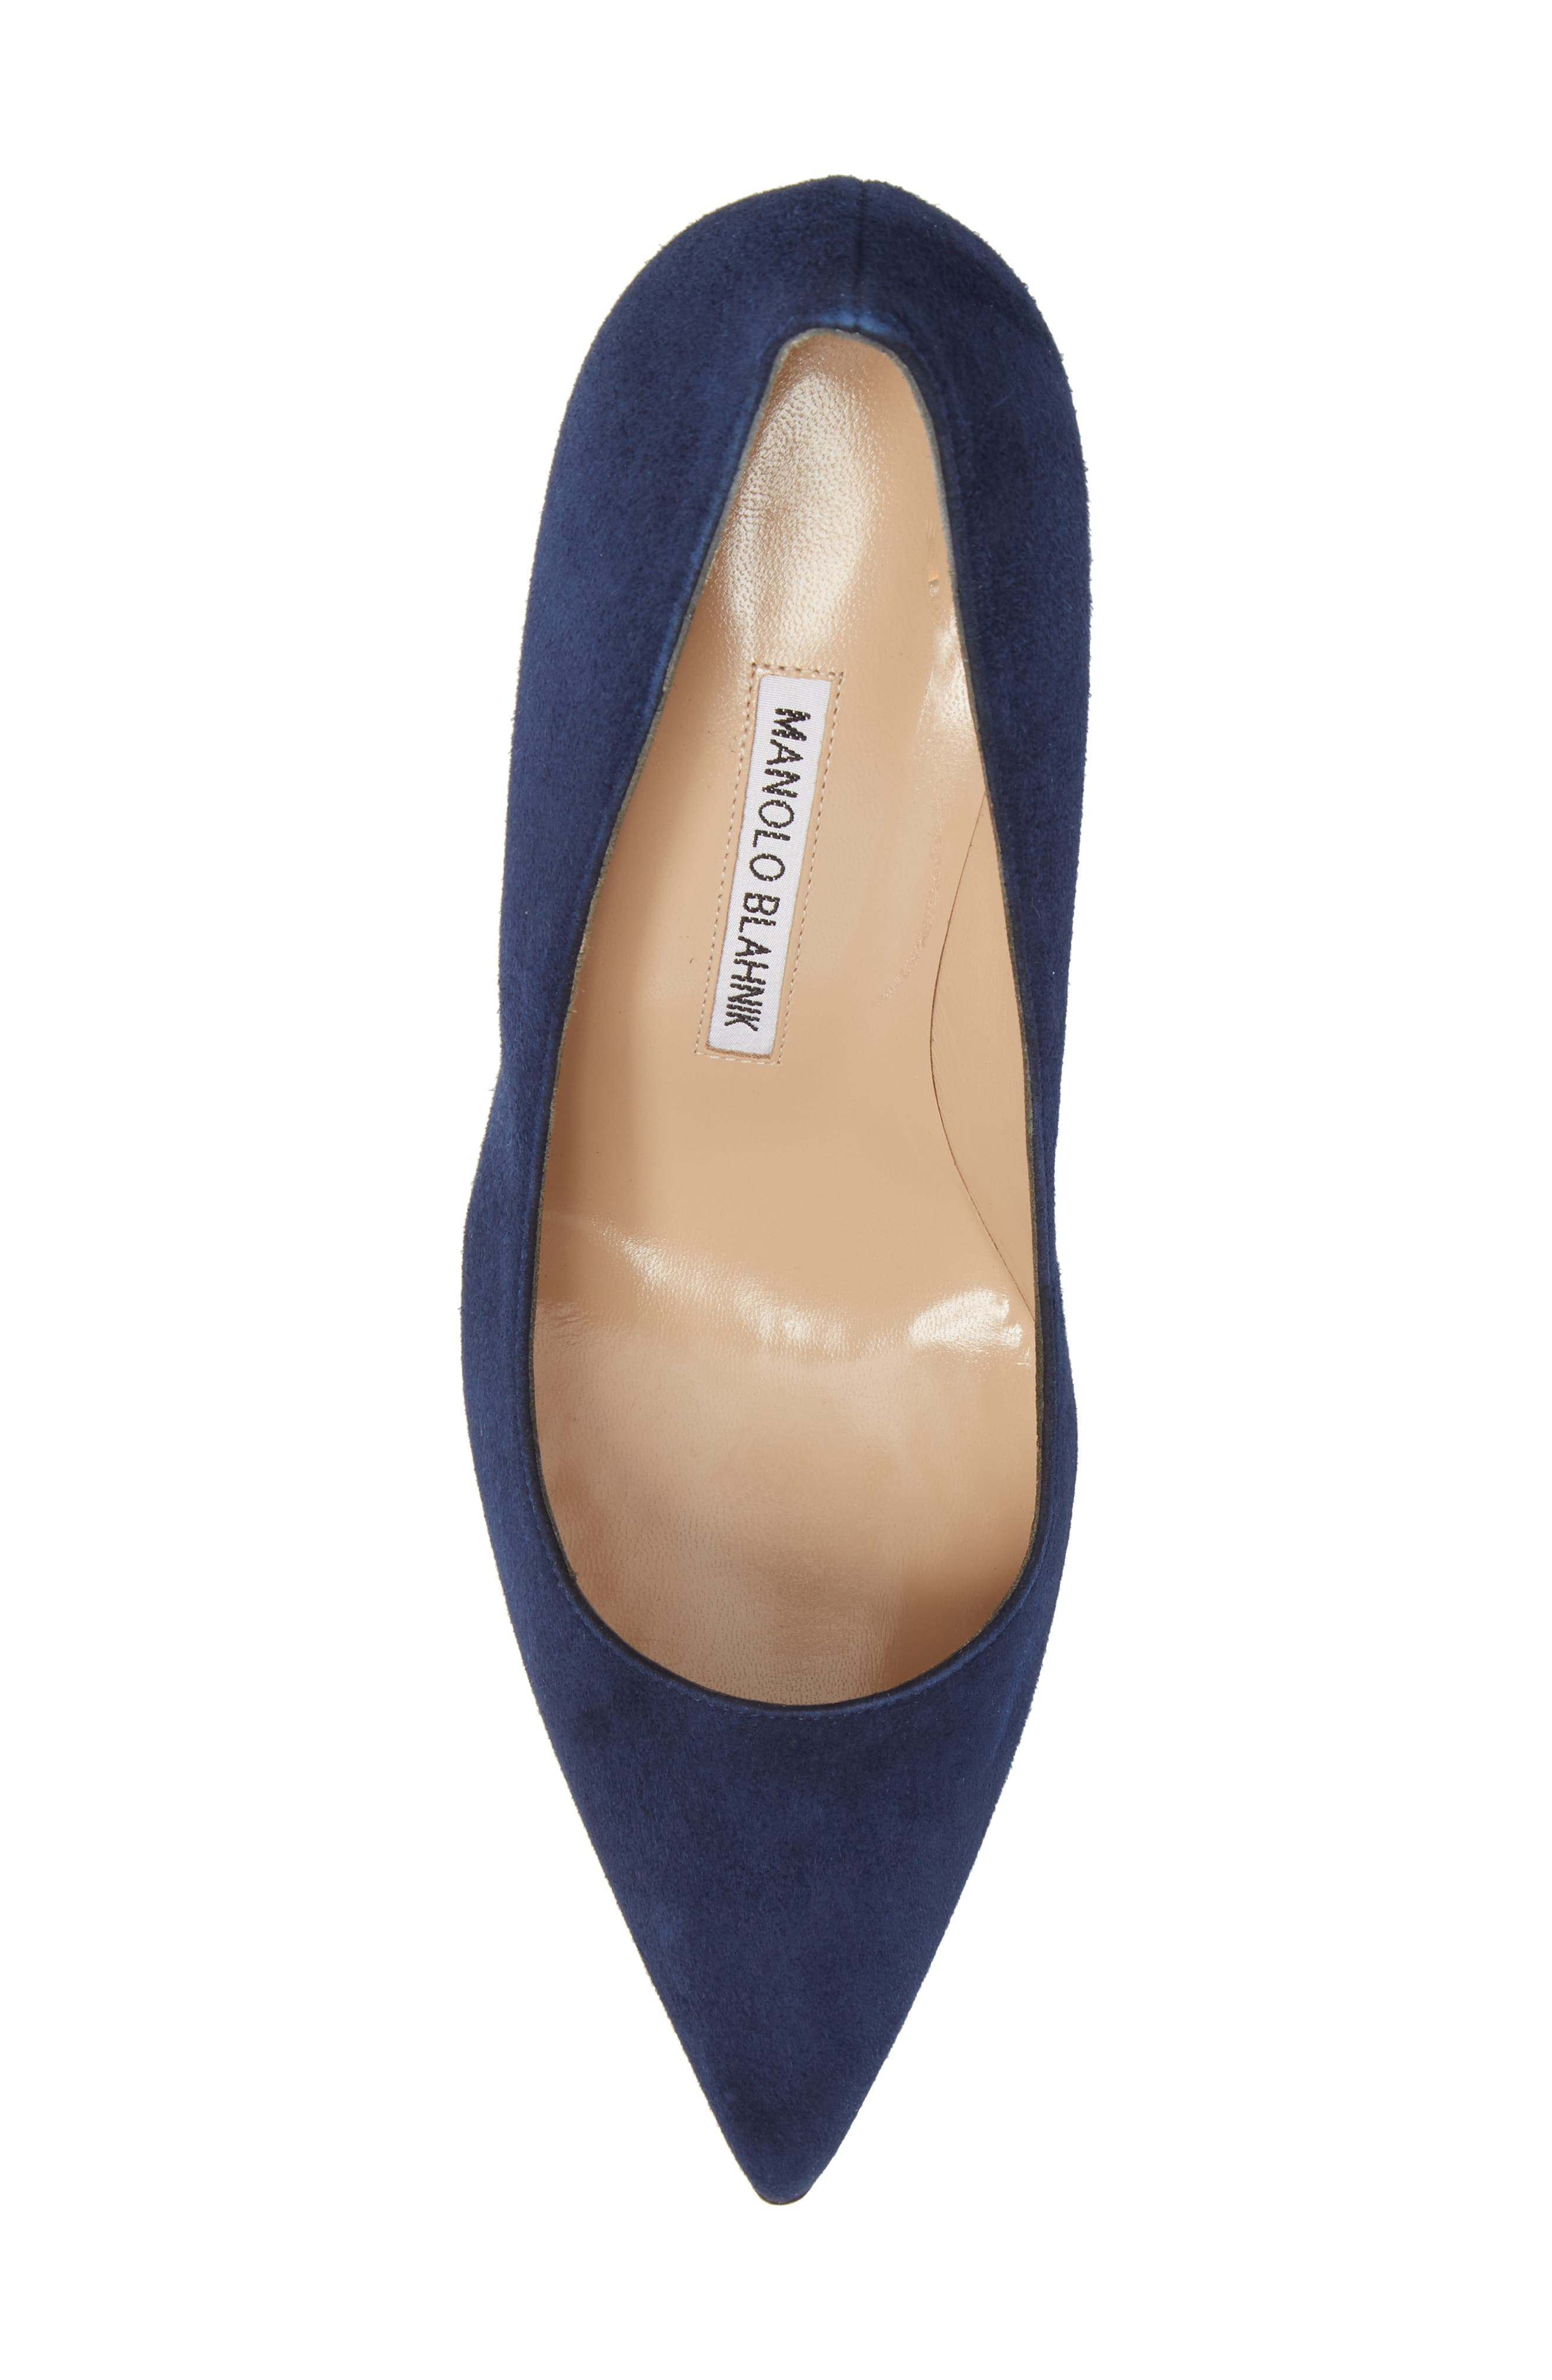 BB Pointy Toe Pump,                             Alternate thumbnail 5, color,                             NAVY SUEDE